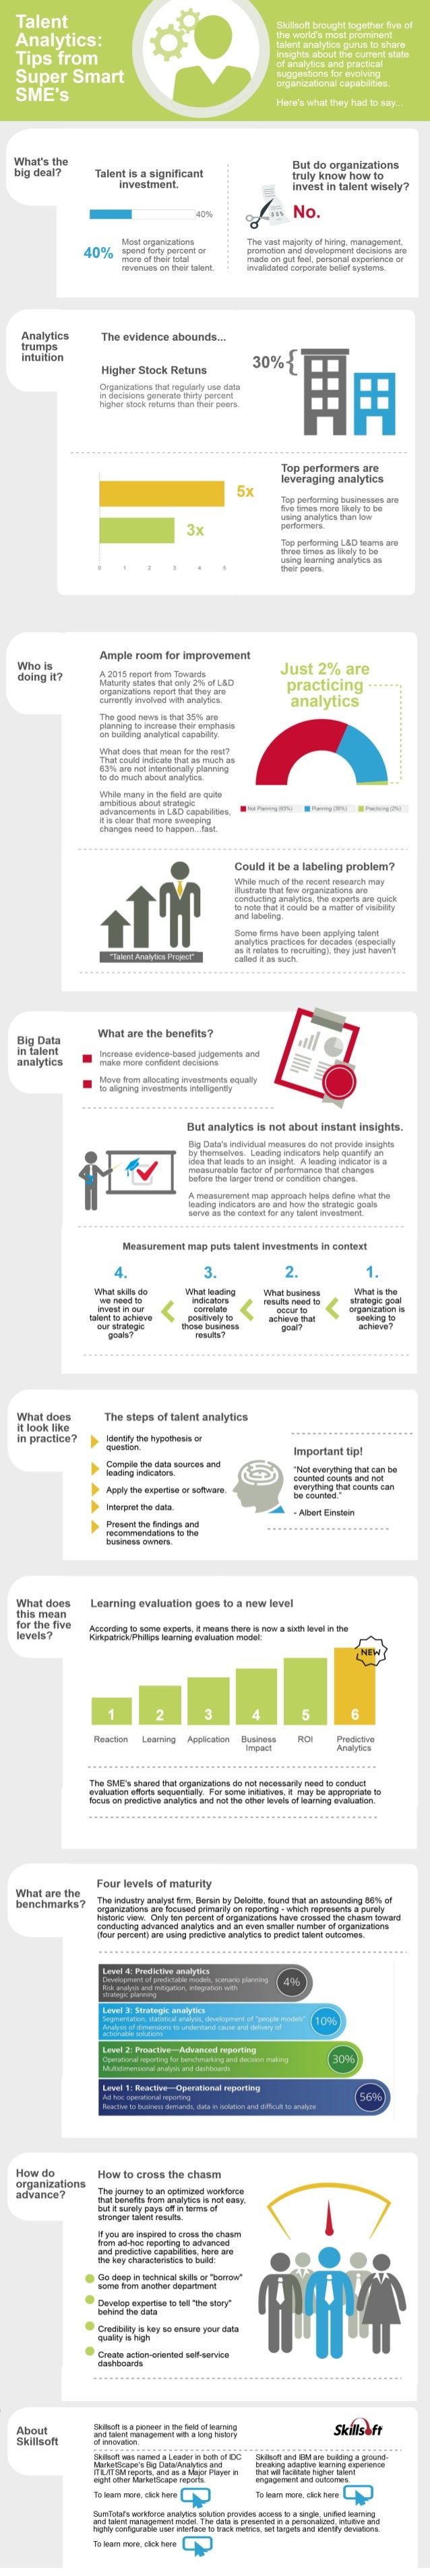 Talent Analytics Tips from  Super Smart  SME's  What's the big deal?   Analytics trumps intuition  Who is doing it?   Big ...